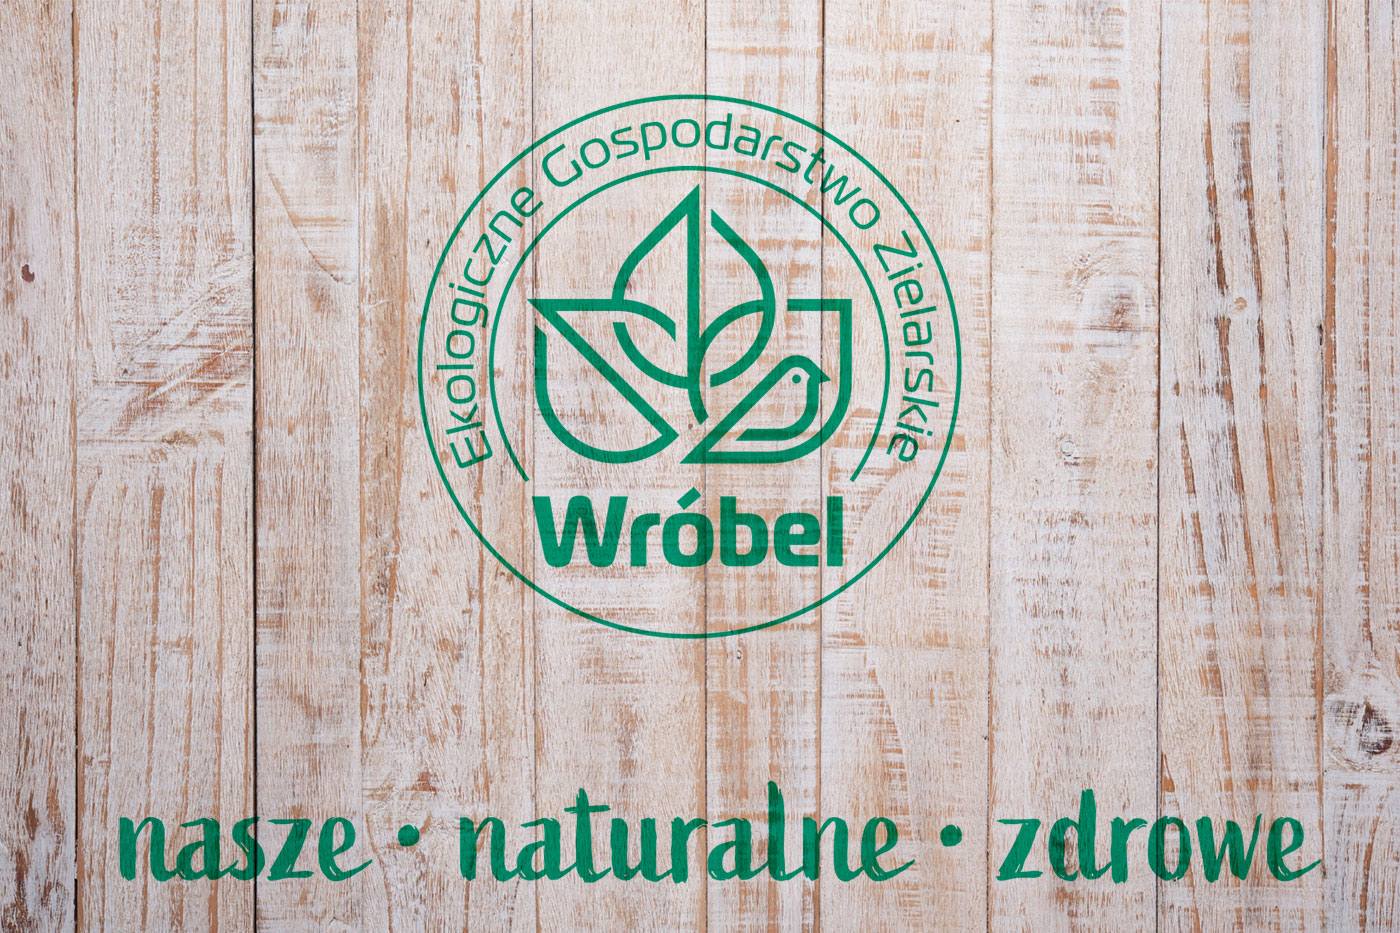 Wrobel net 2